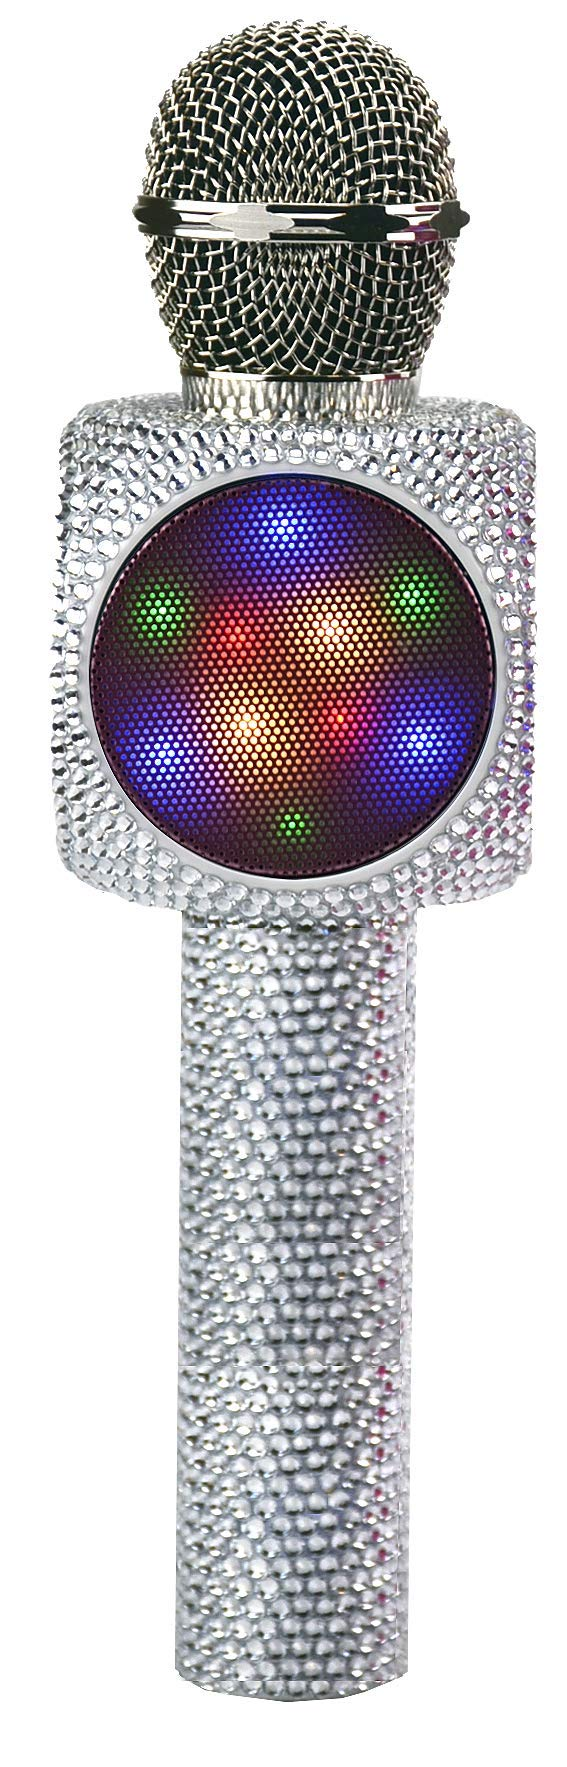 Wireless Express Sing-Along Bling Bluetooth Karaoke Microphone and Bluetooth Stereo Speaker All-in-One by Wireless Express (Image #1)